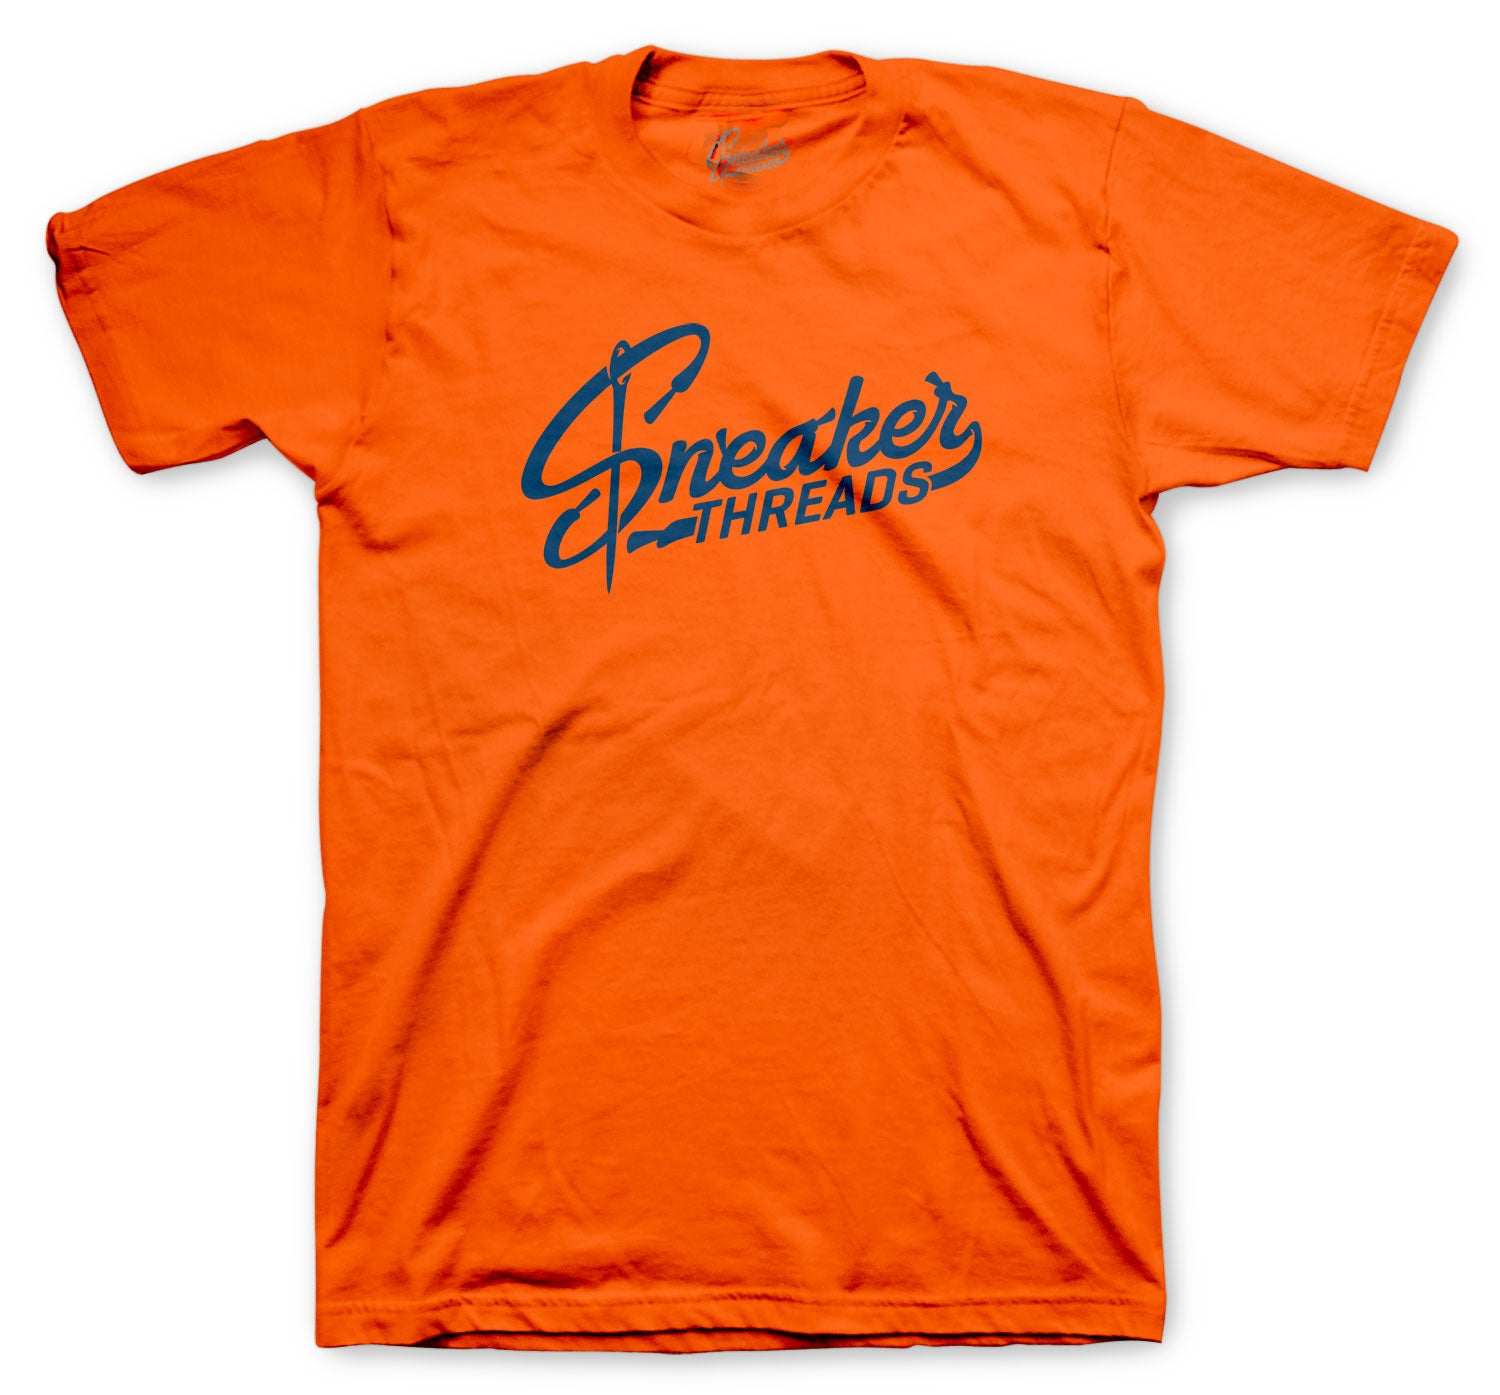 Mens Tee collection matches perfectly with the foamposite sneaker collection rugged orange